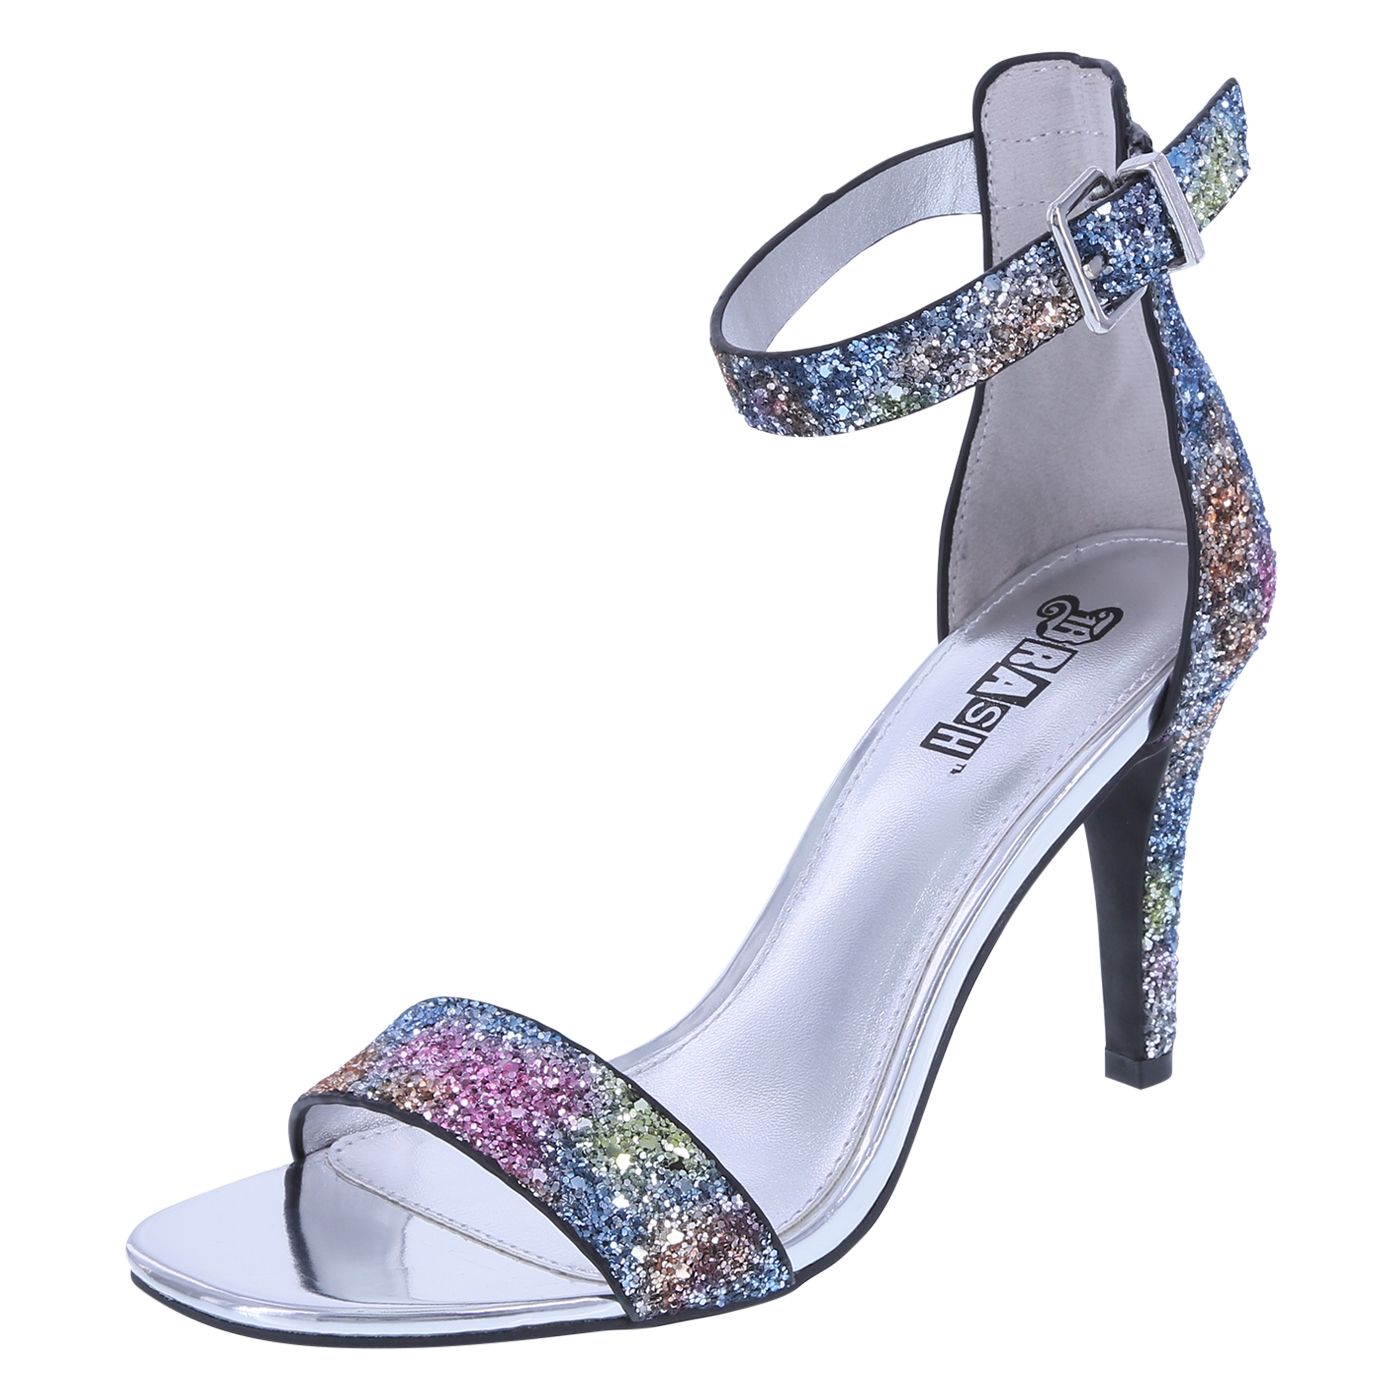 """All eyes will be on you with this gorgeous sandal from Brash! The Kandy features a sleek two-piece design, adjustable ankle strap with buckle, metallic lining, padded insole, 3 1/2"""" wrapped heel, and a rubber outsole. Manmade materials."""